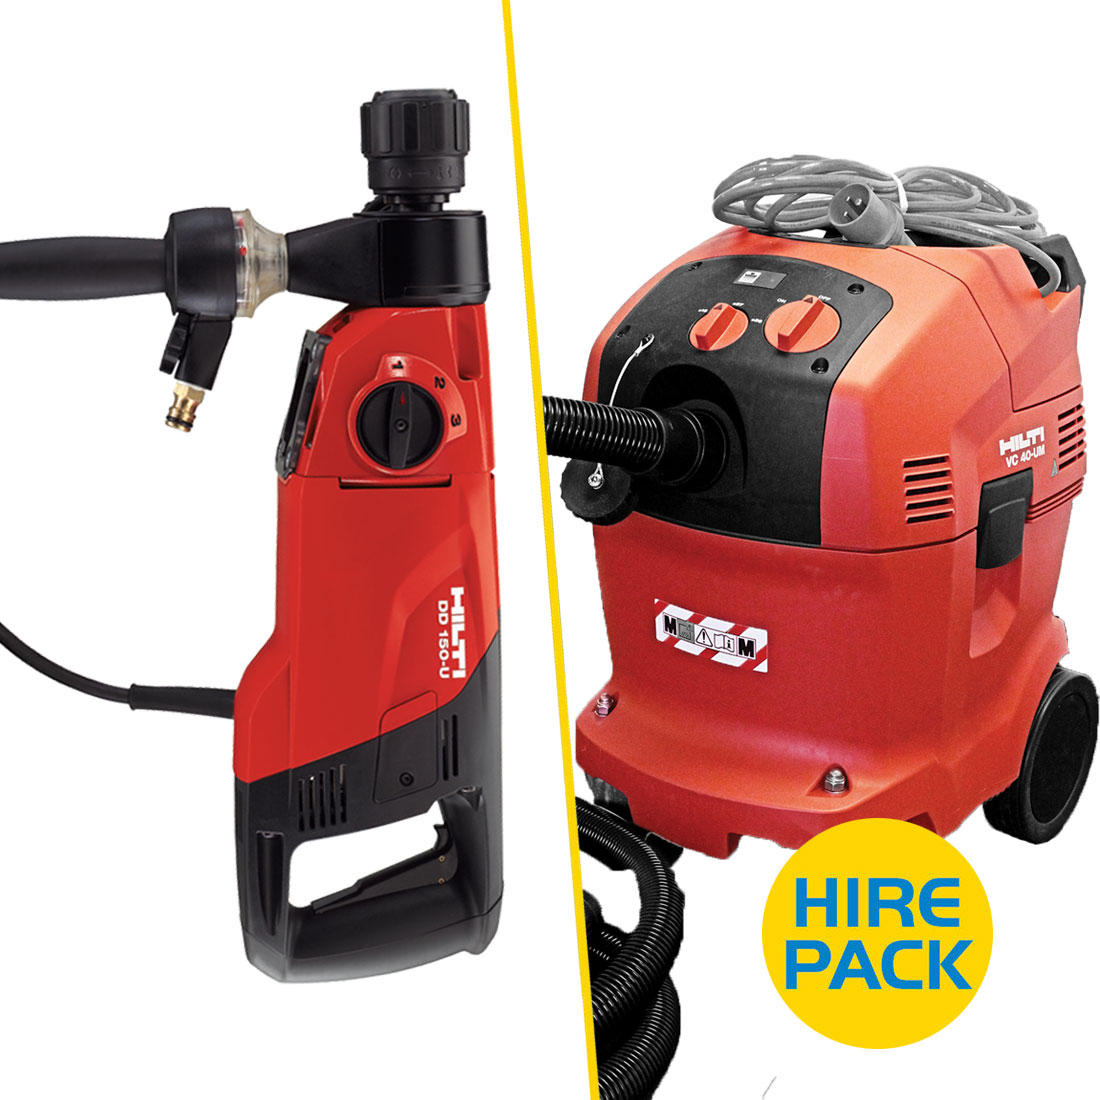 DD150 Diamond Drill Hire Pack 1